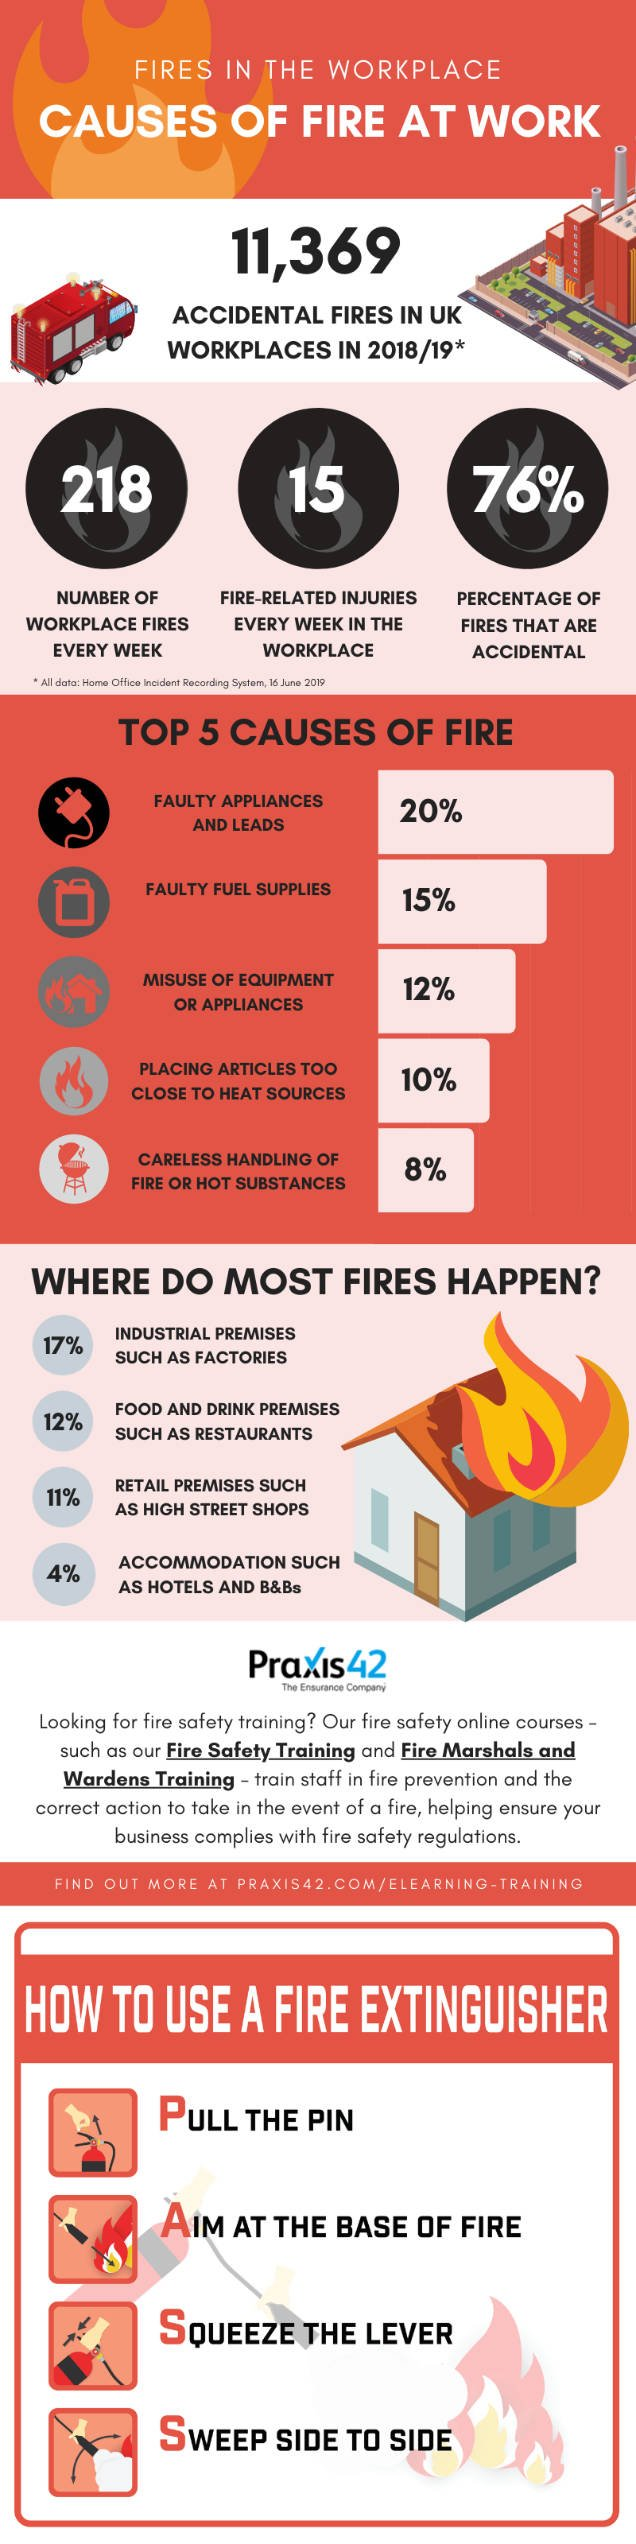 Fires in the workplace infographic